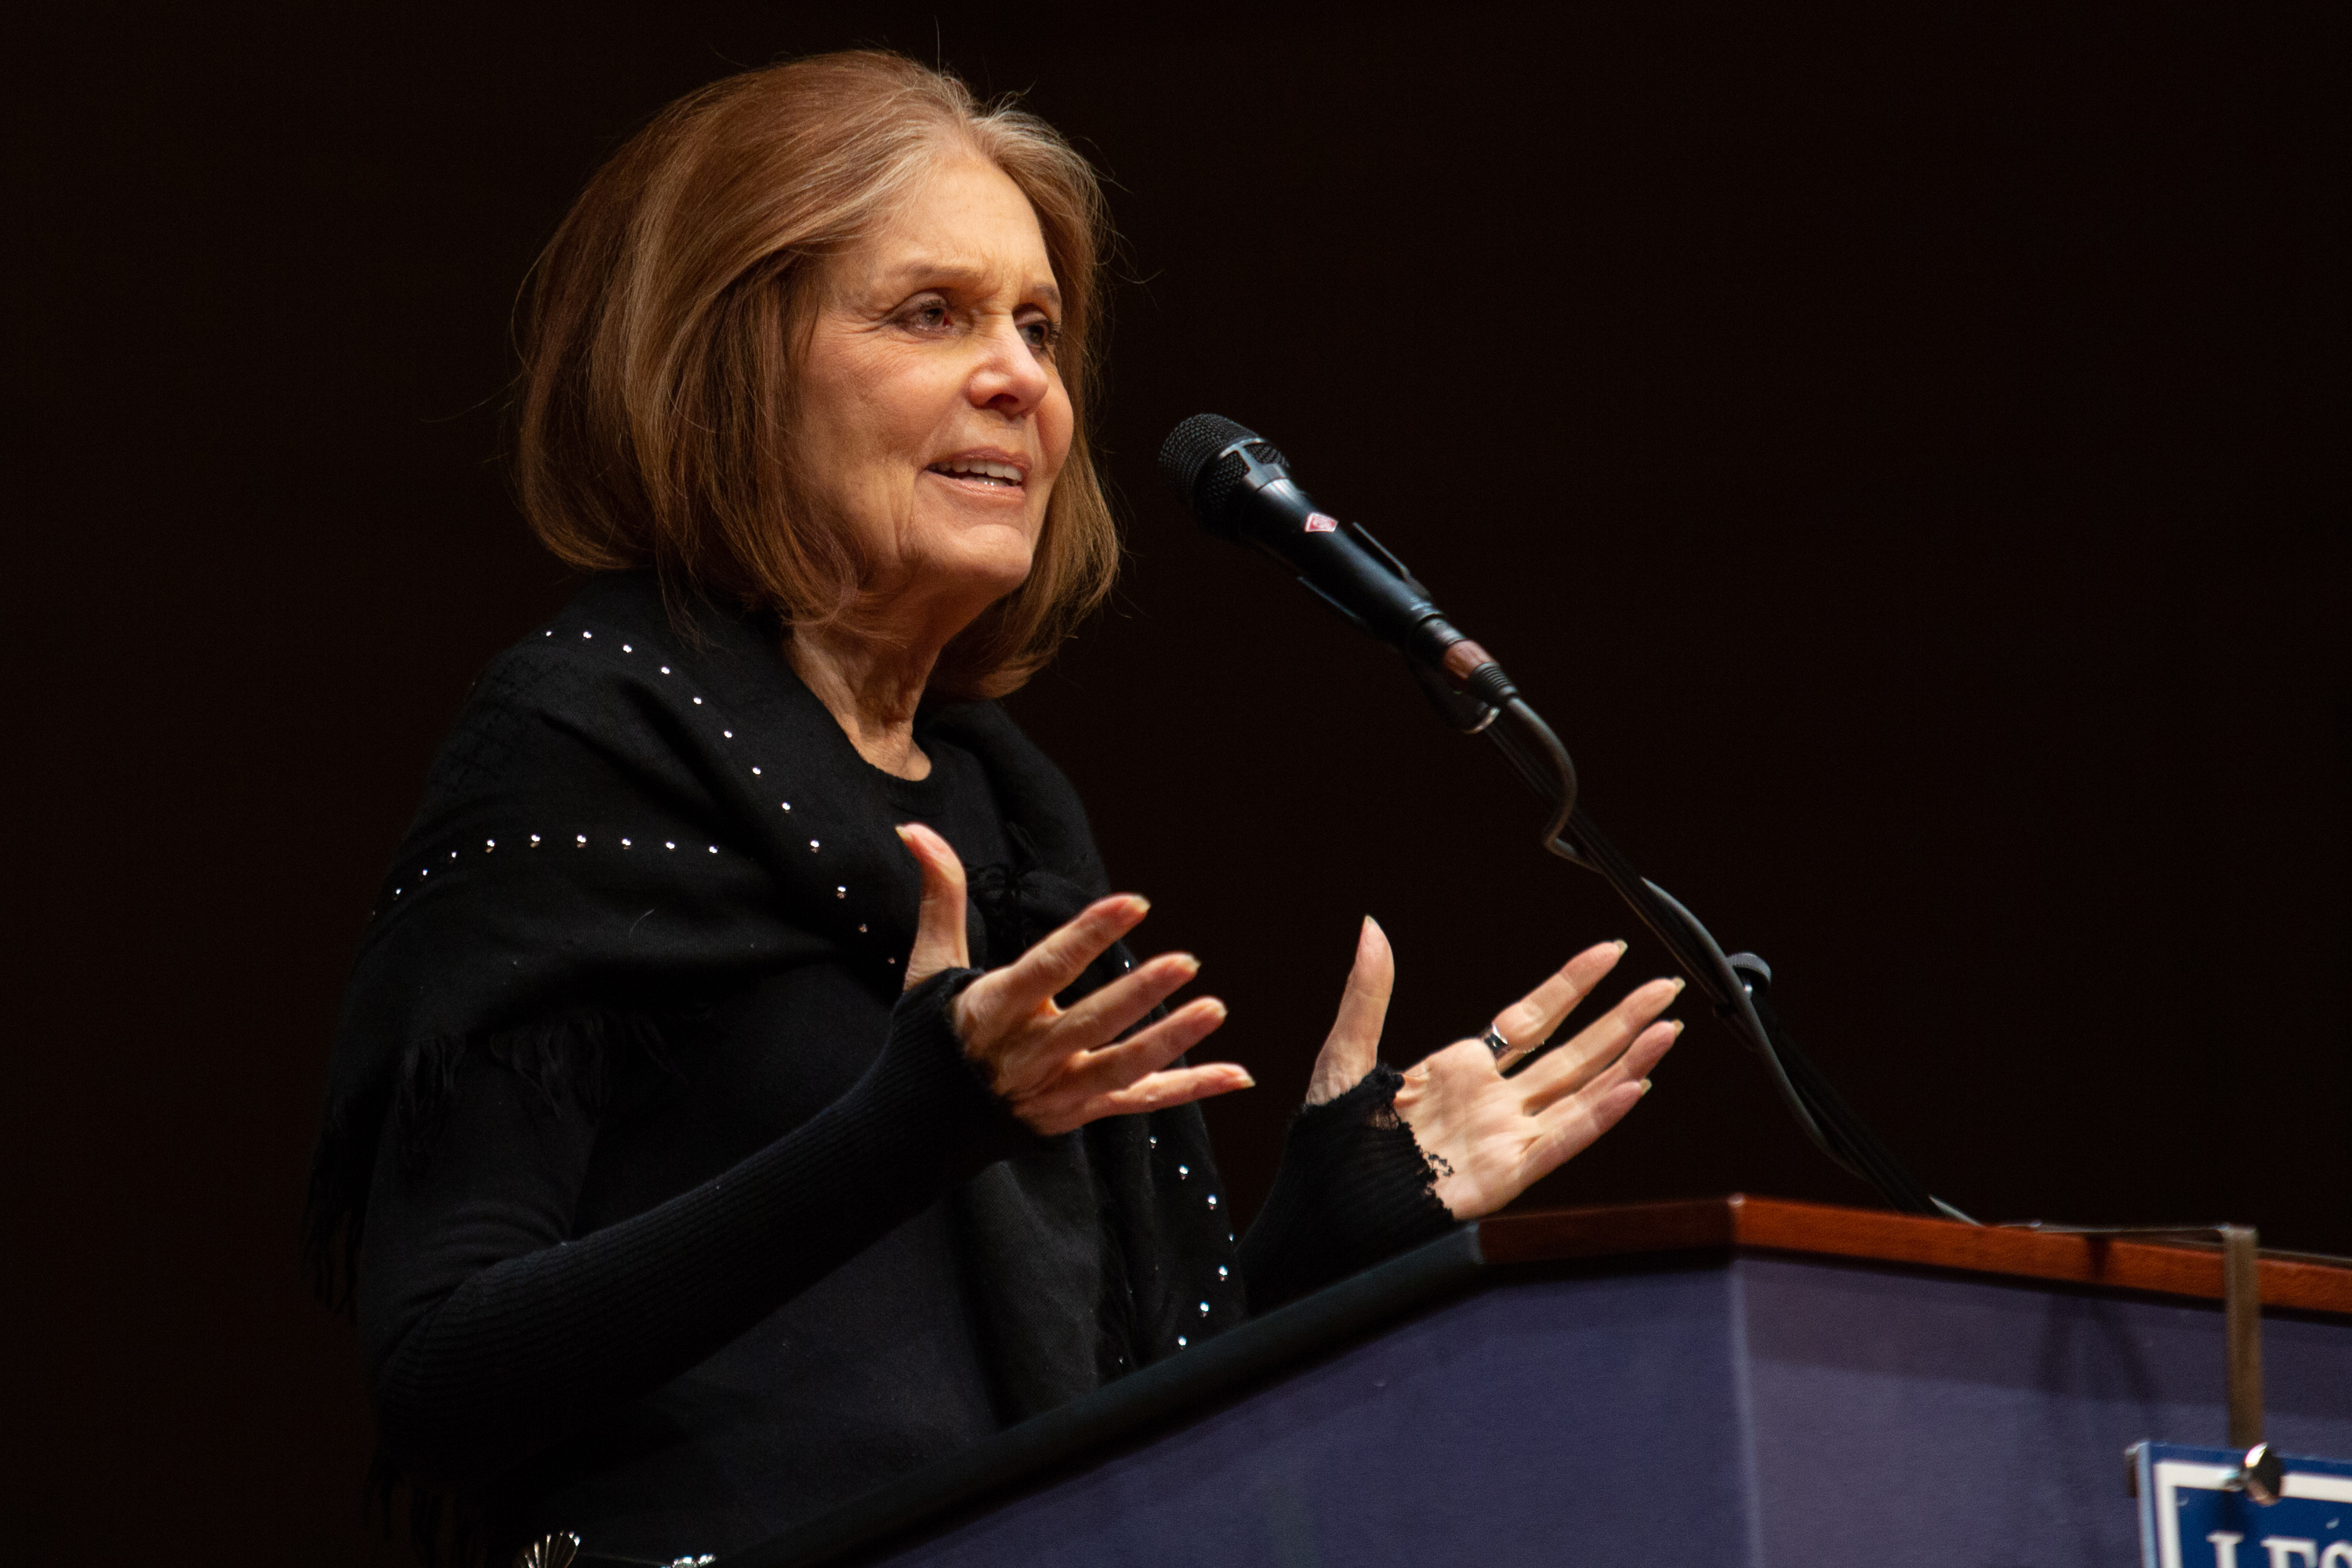 Gloria Steinem speaks at the Symphony Hall podium